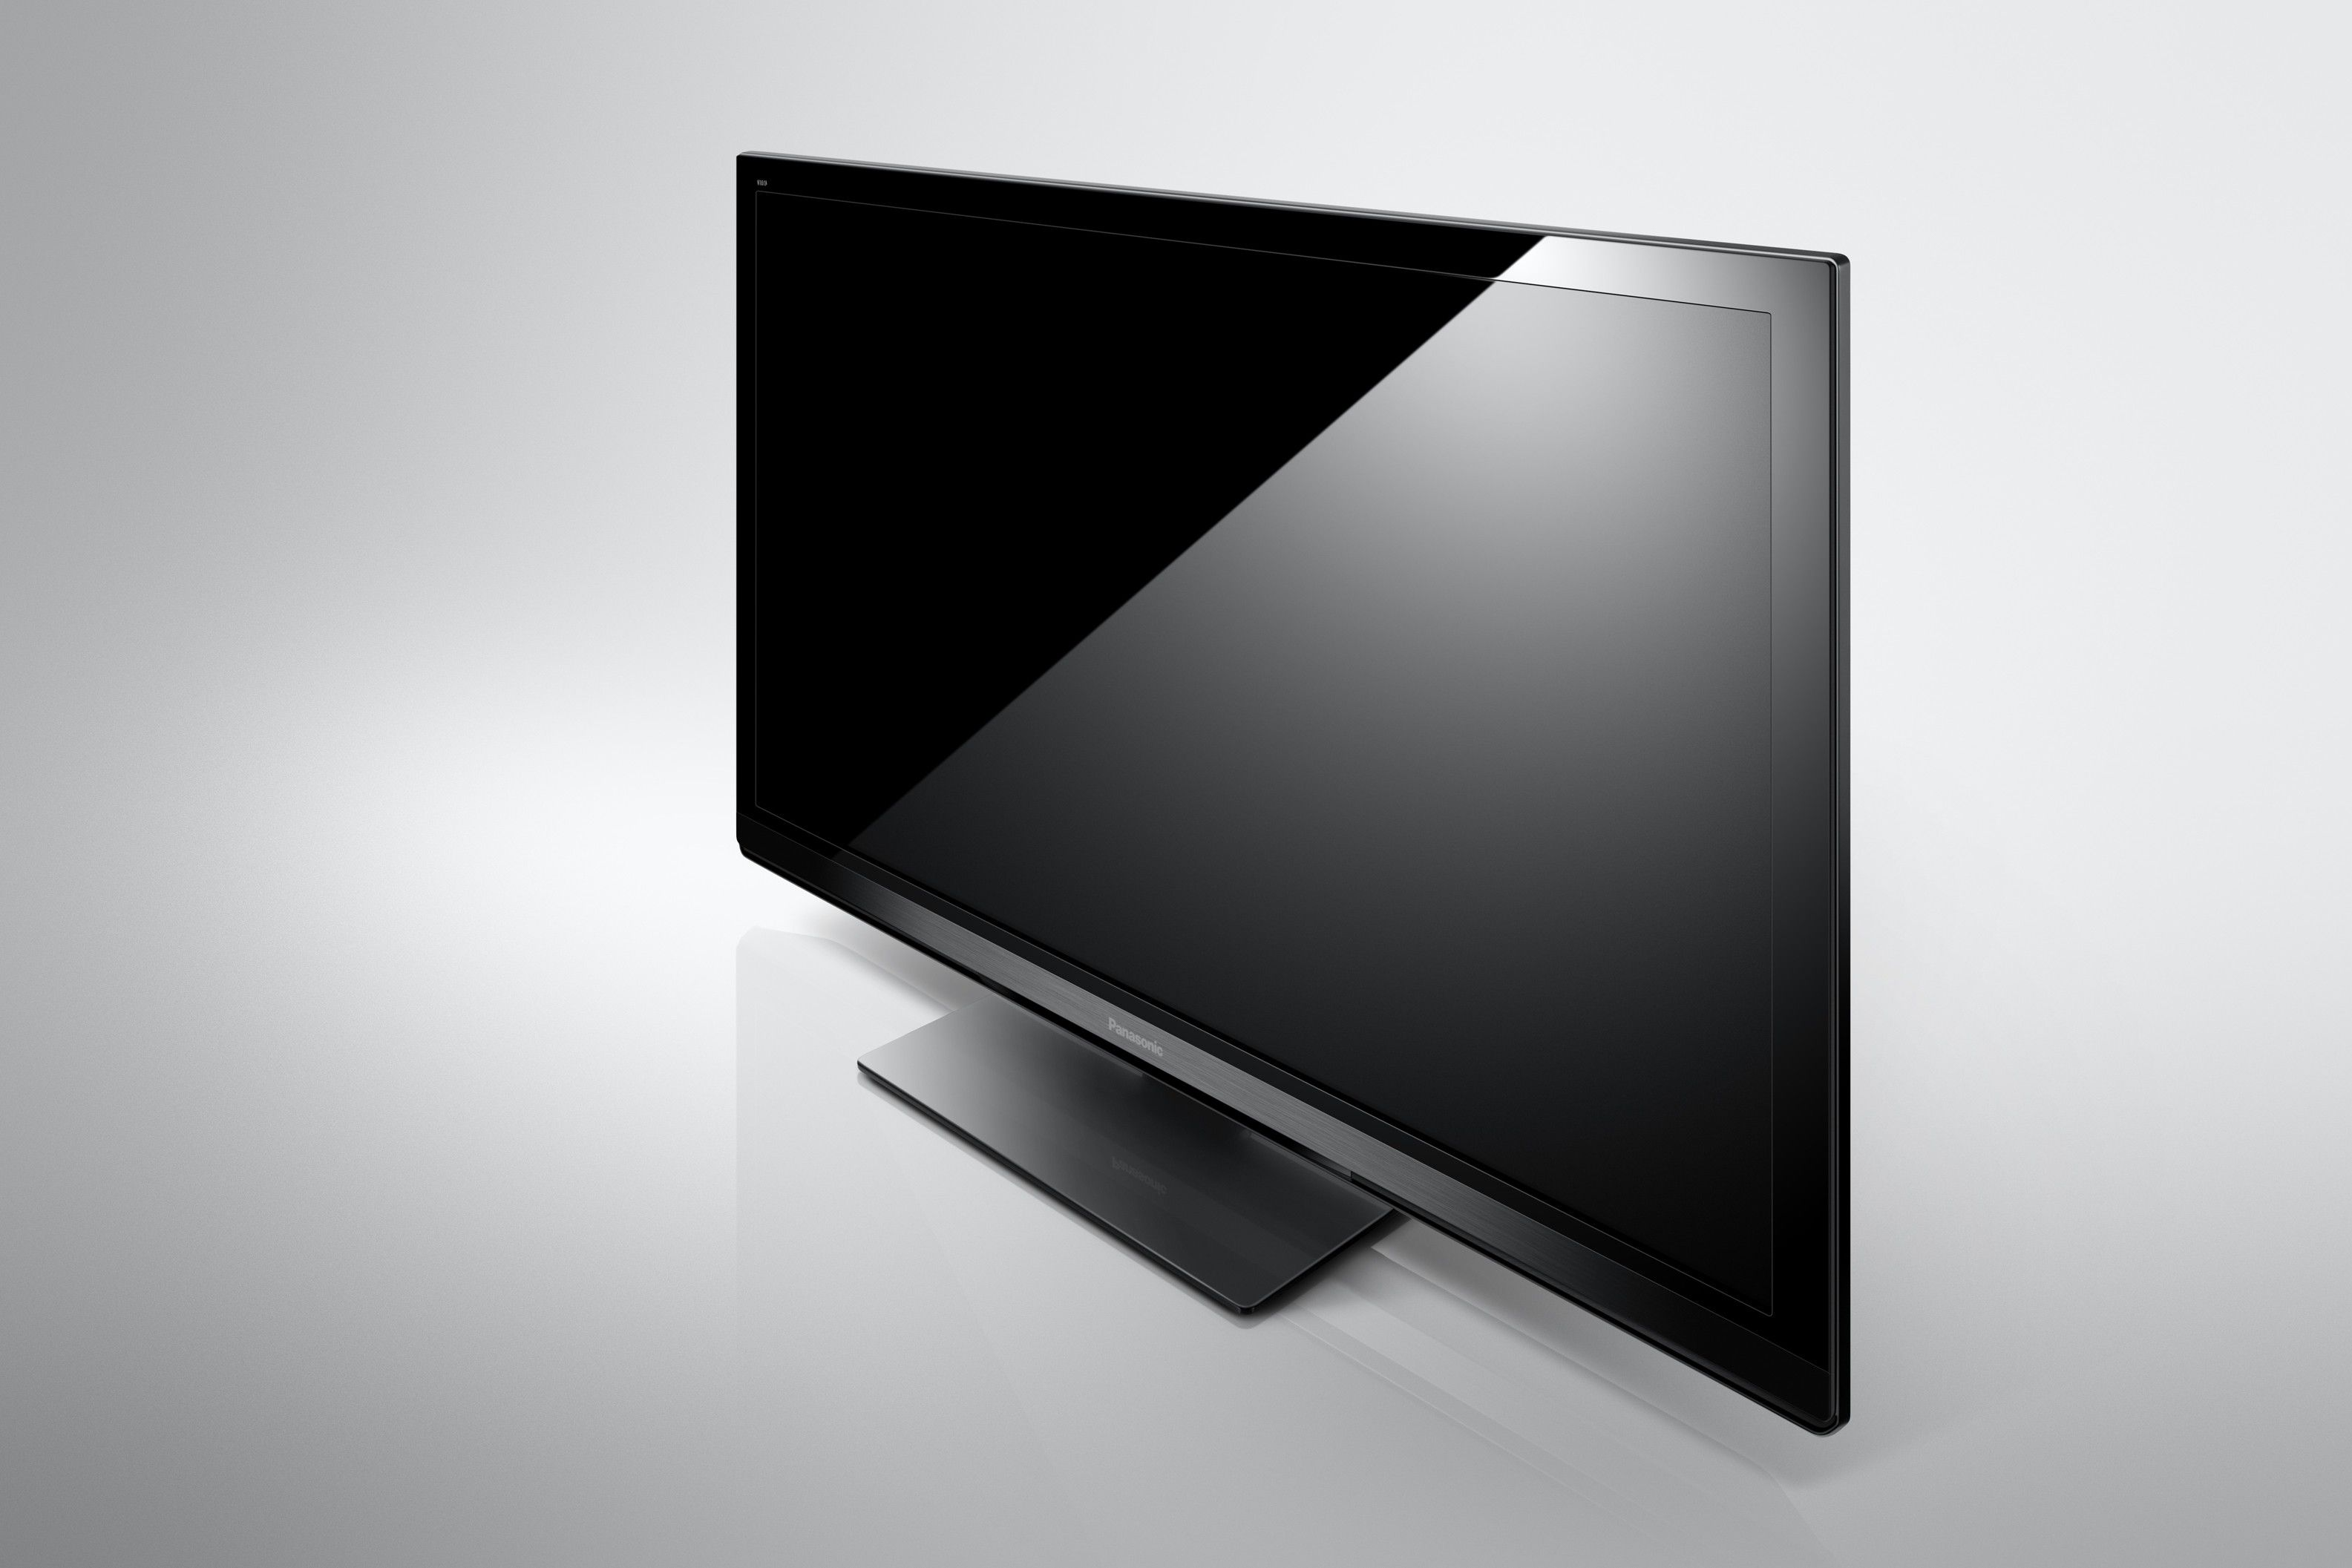 kalibrierbare plasma fernseher f r wenig geld pc welt. Black Bedroom Furniture Sets. Home Design Ideas